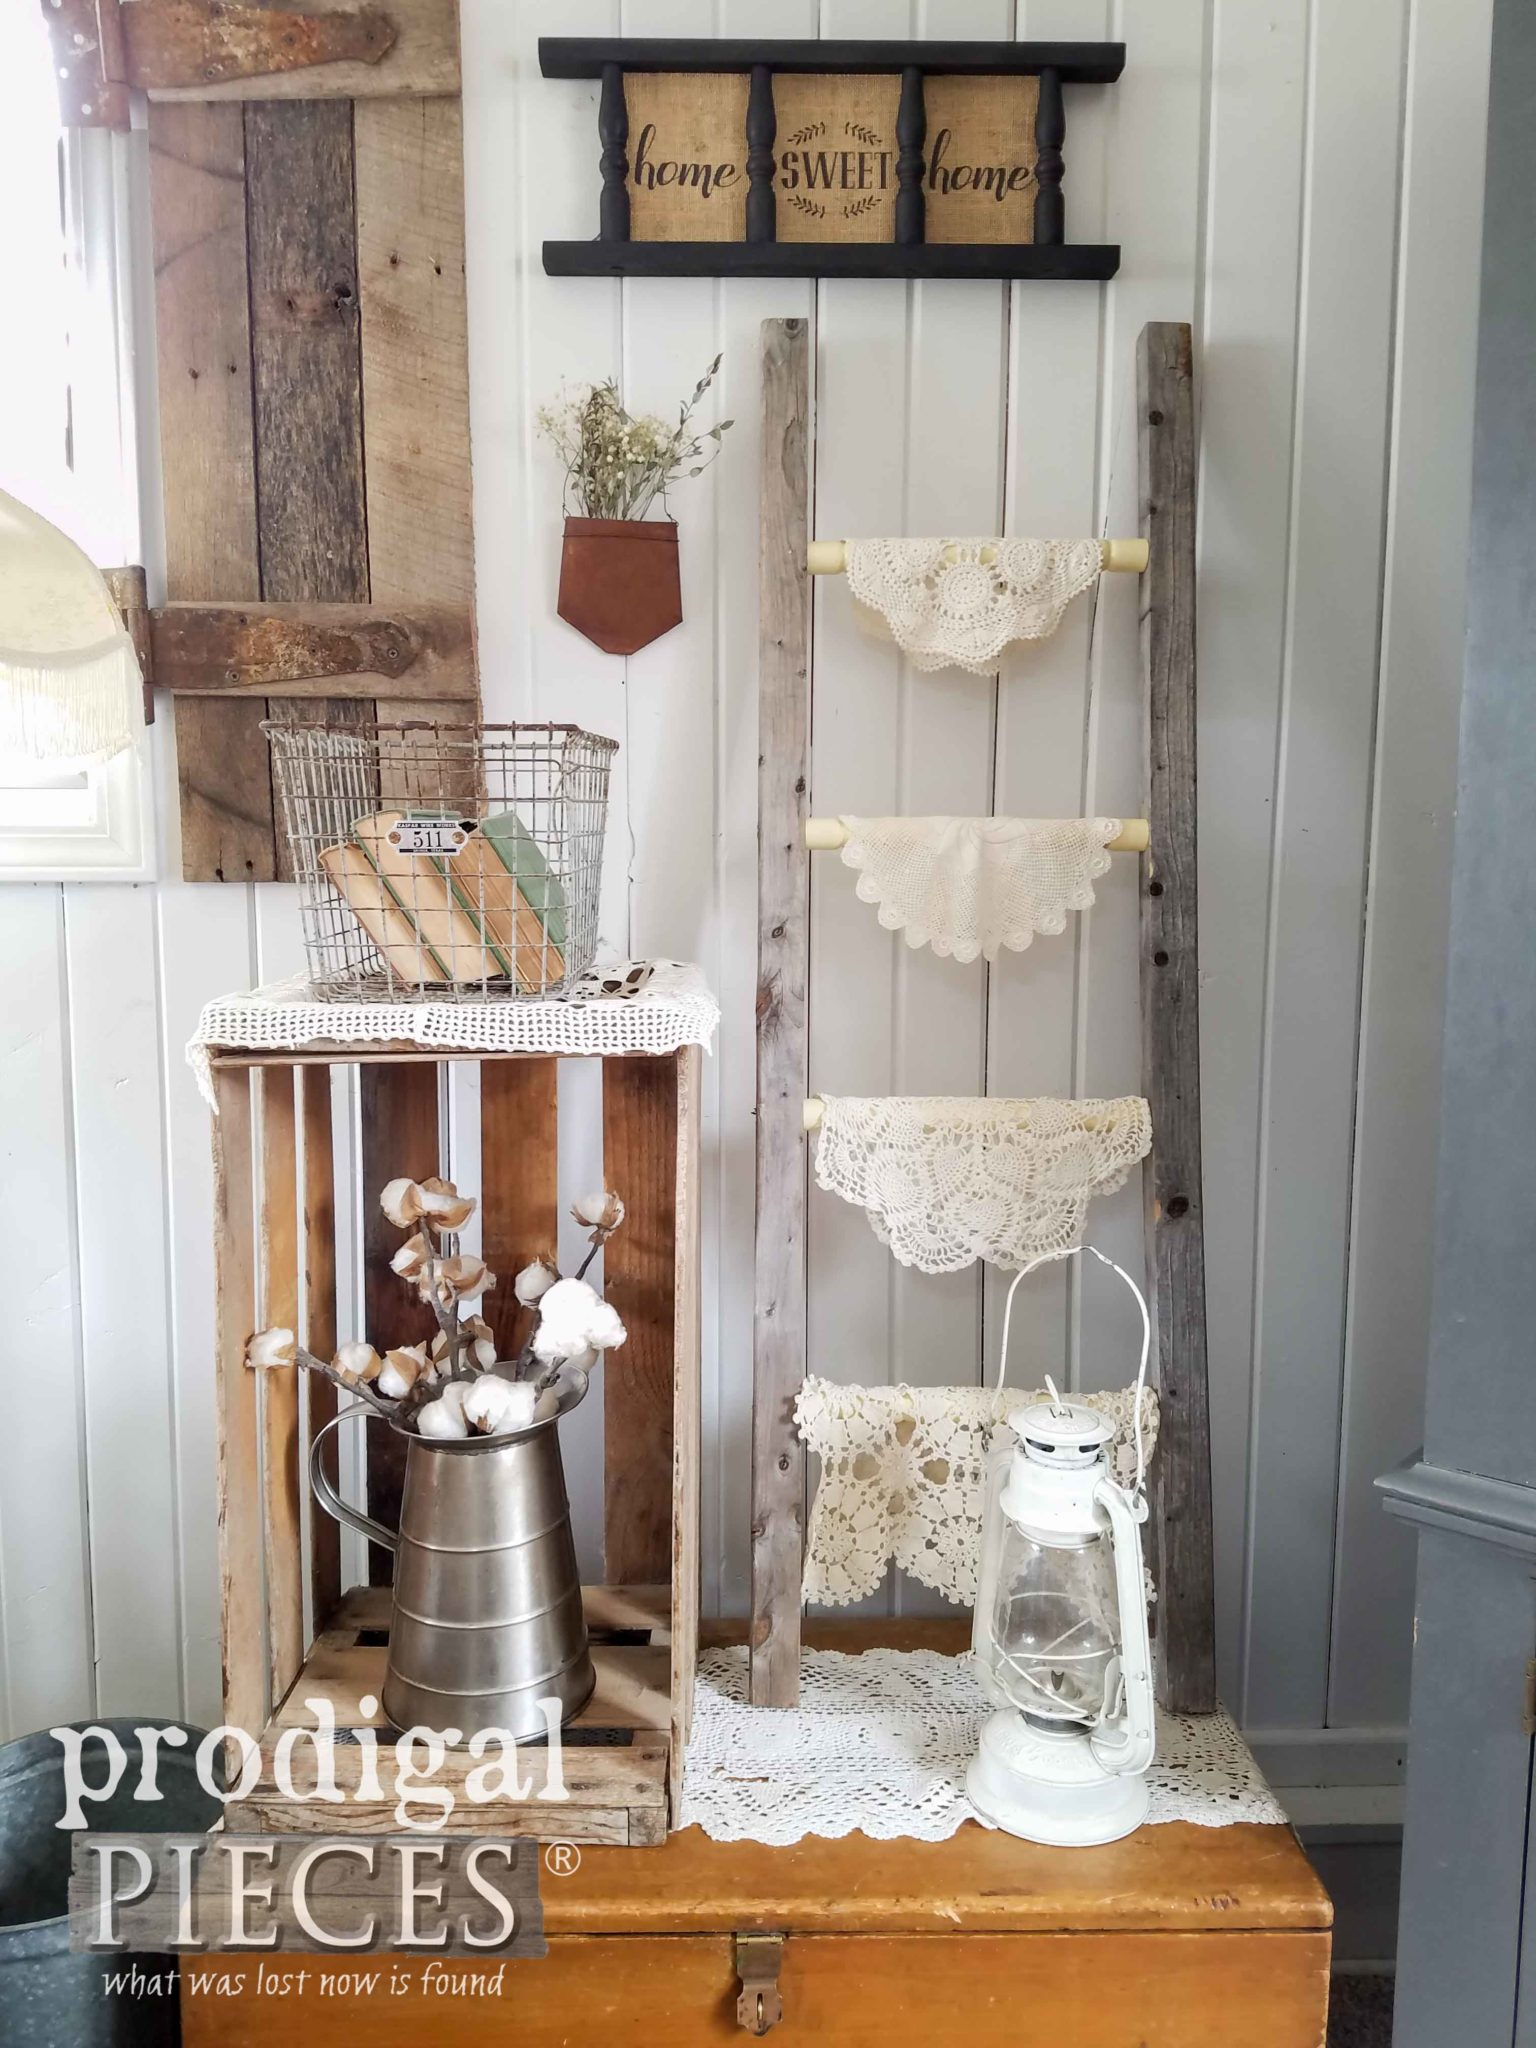 Repurposed Farmhouse Home Decor from curbside #trashure finds by Larissa & Son of Prodigal Pieces | prodigalpieces.com